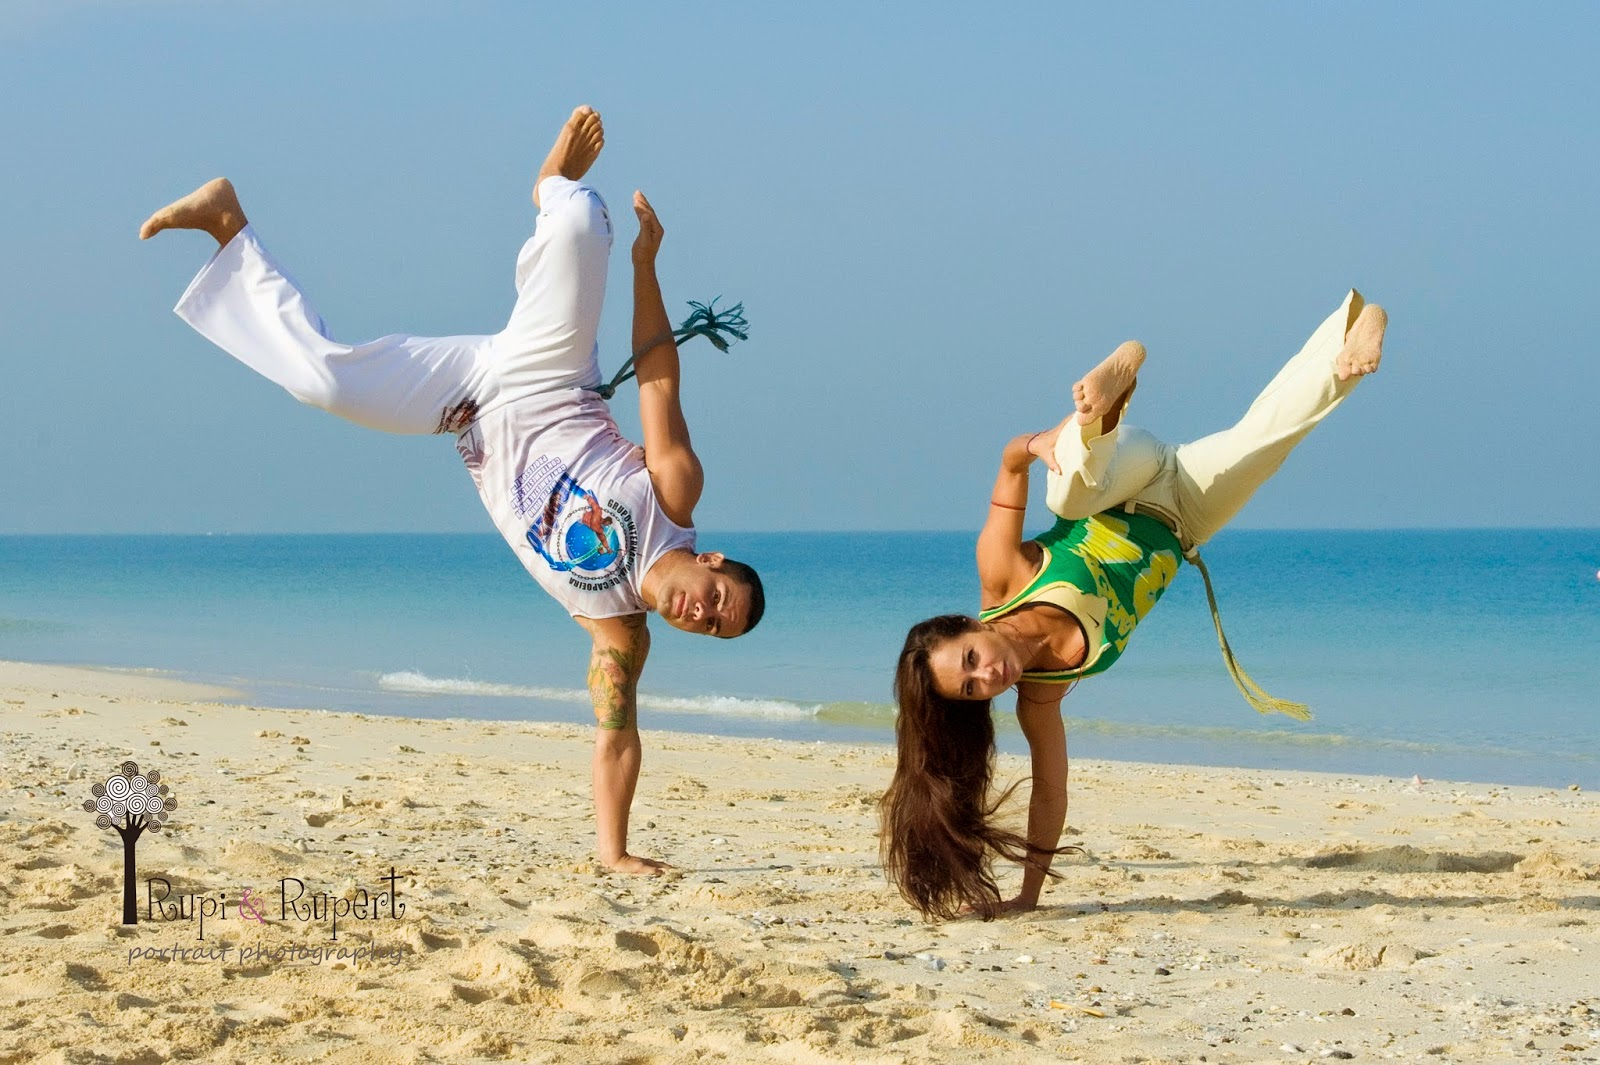 Capoeira photo images pictures